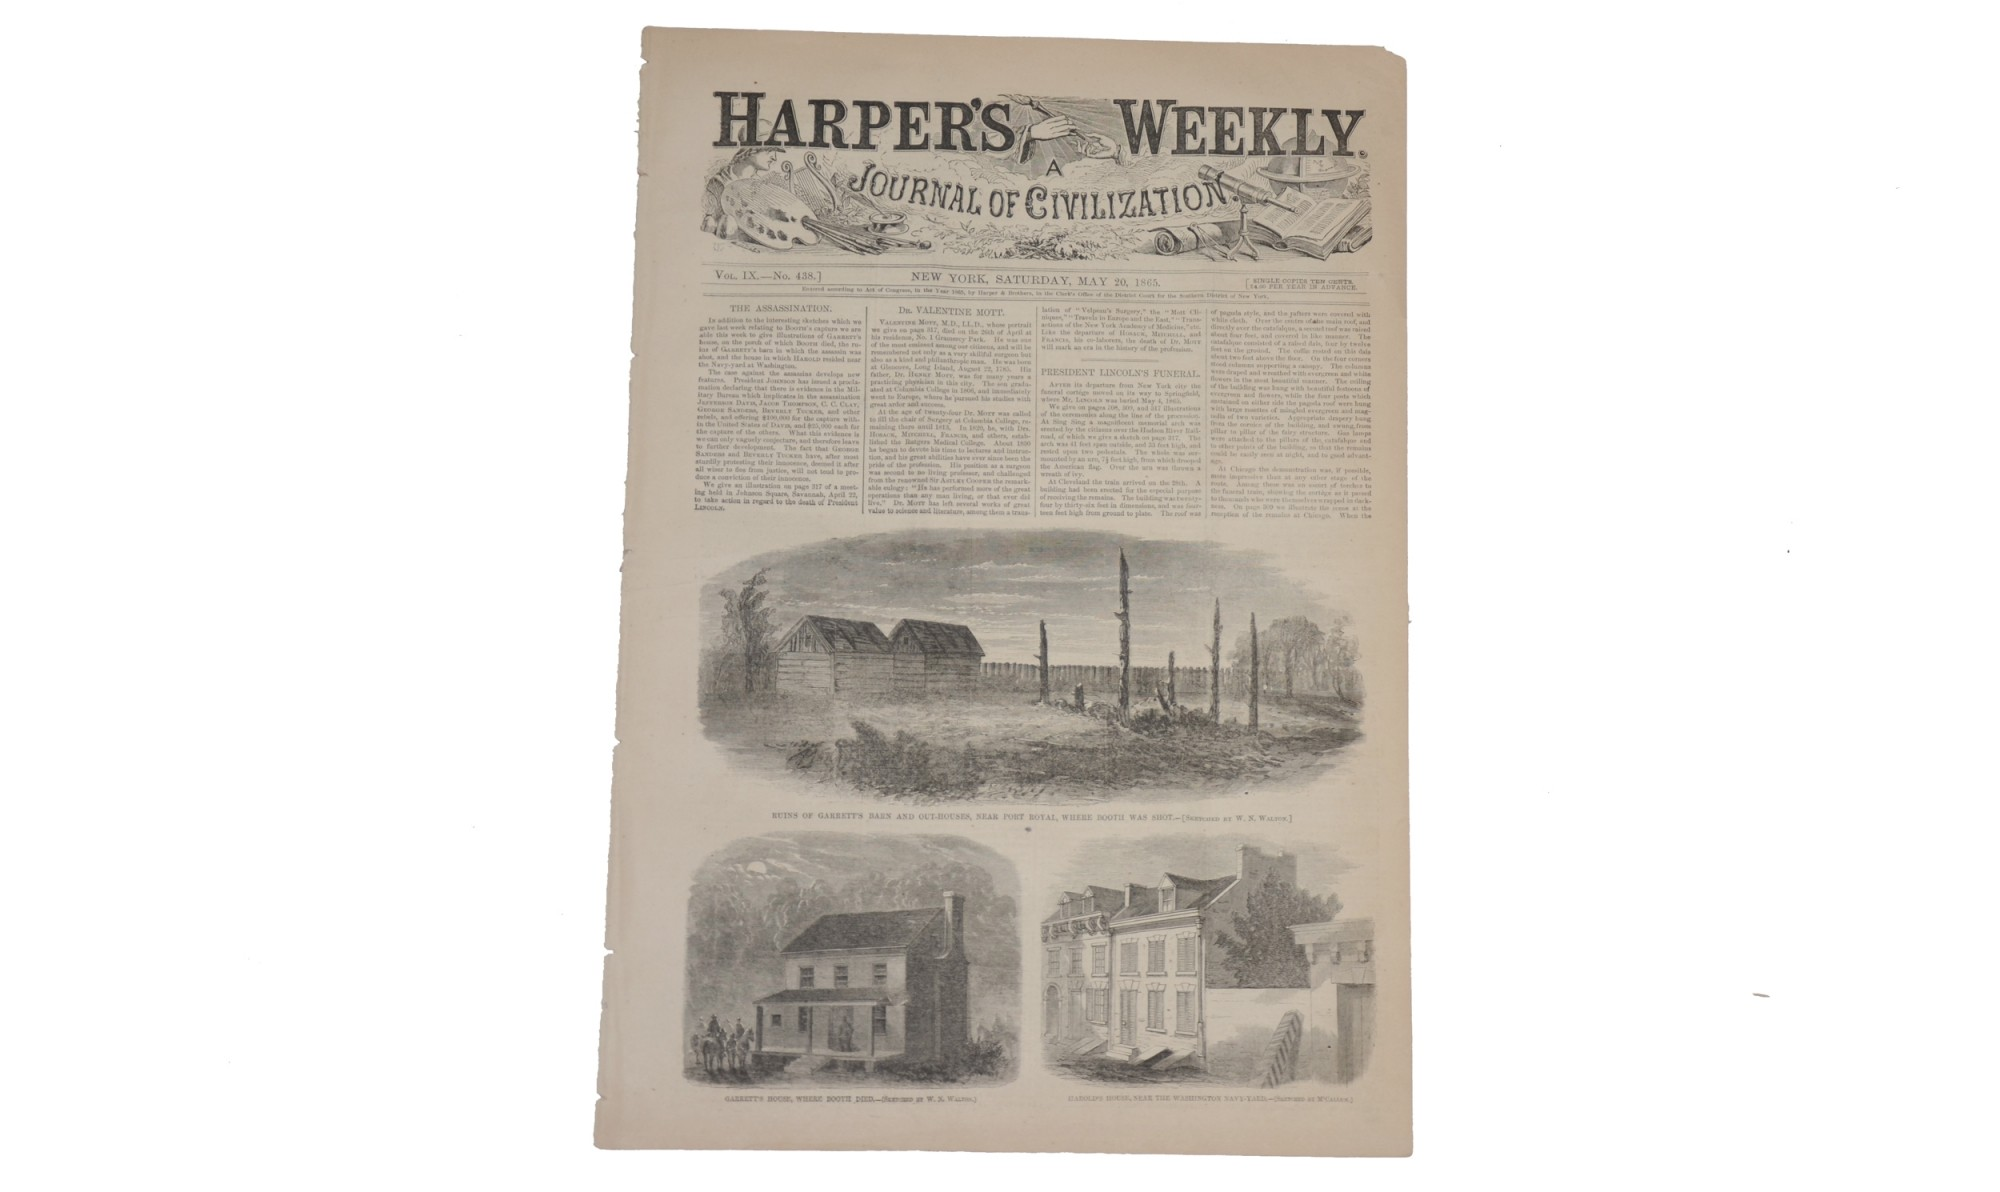 HARPER'S WEEKLY DATED MAY 20, 1865 – LINCOLN CONSPIRATORS